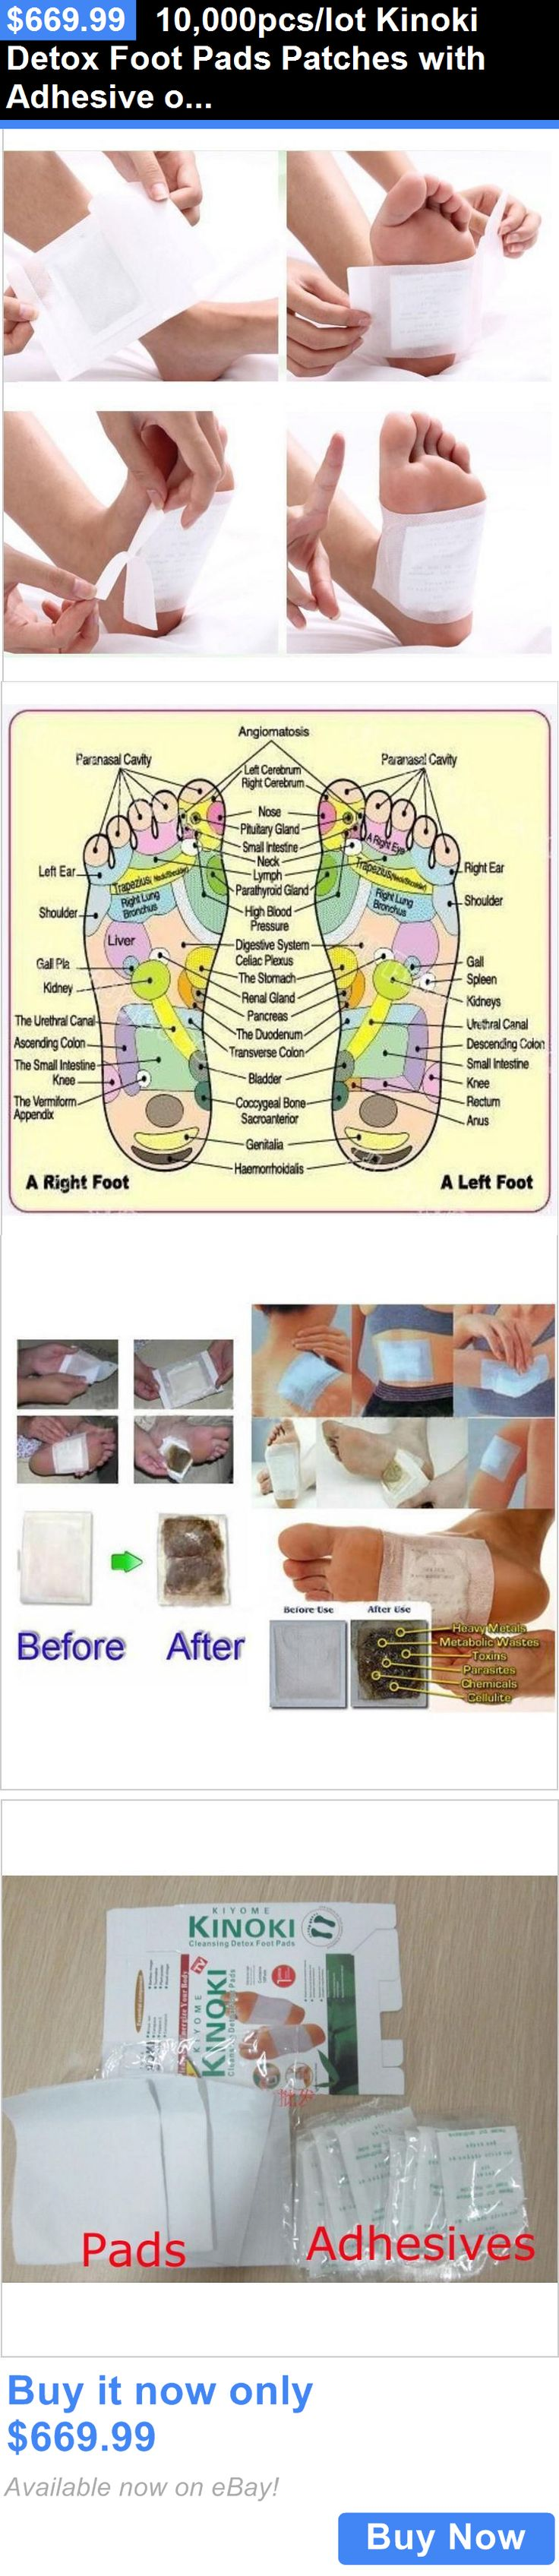 Detox Pads: 10,000Pcs/Lot Kinoki Detox Foot Pads Patches With Adhesive Opp Packing Foot Care BUY IT NOW ONLY: $669.99